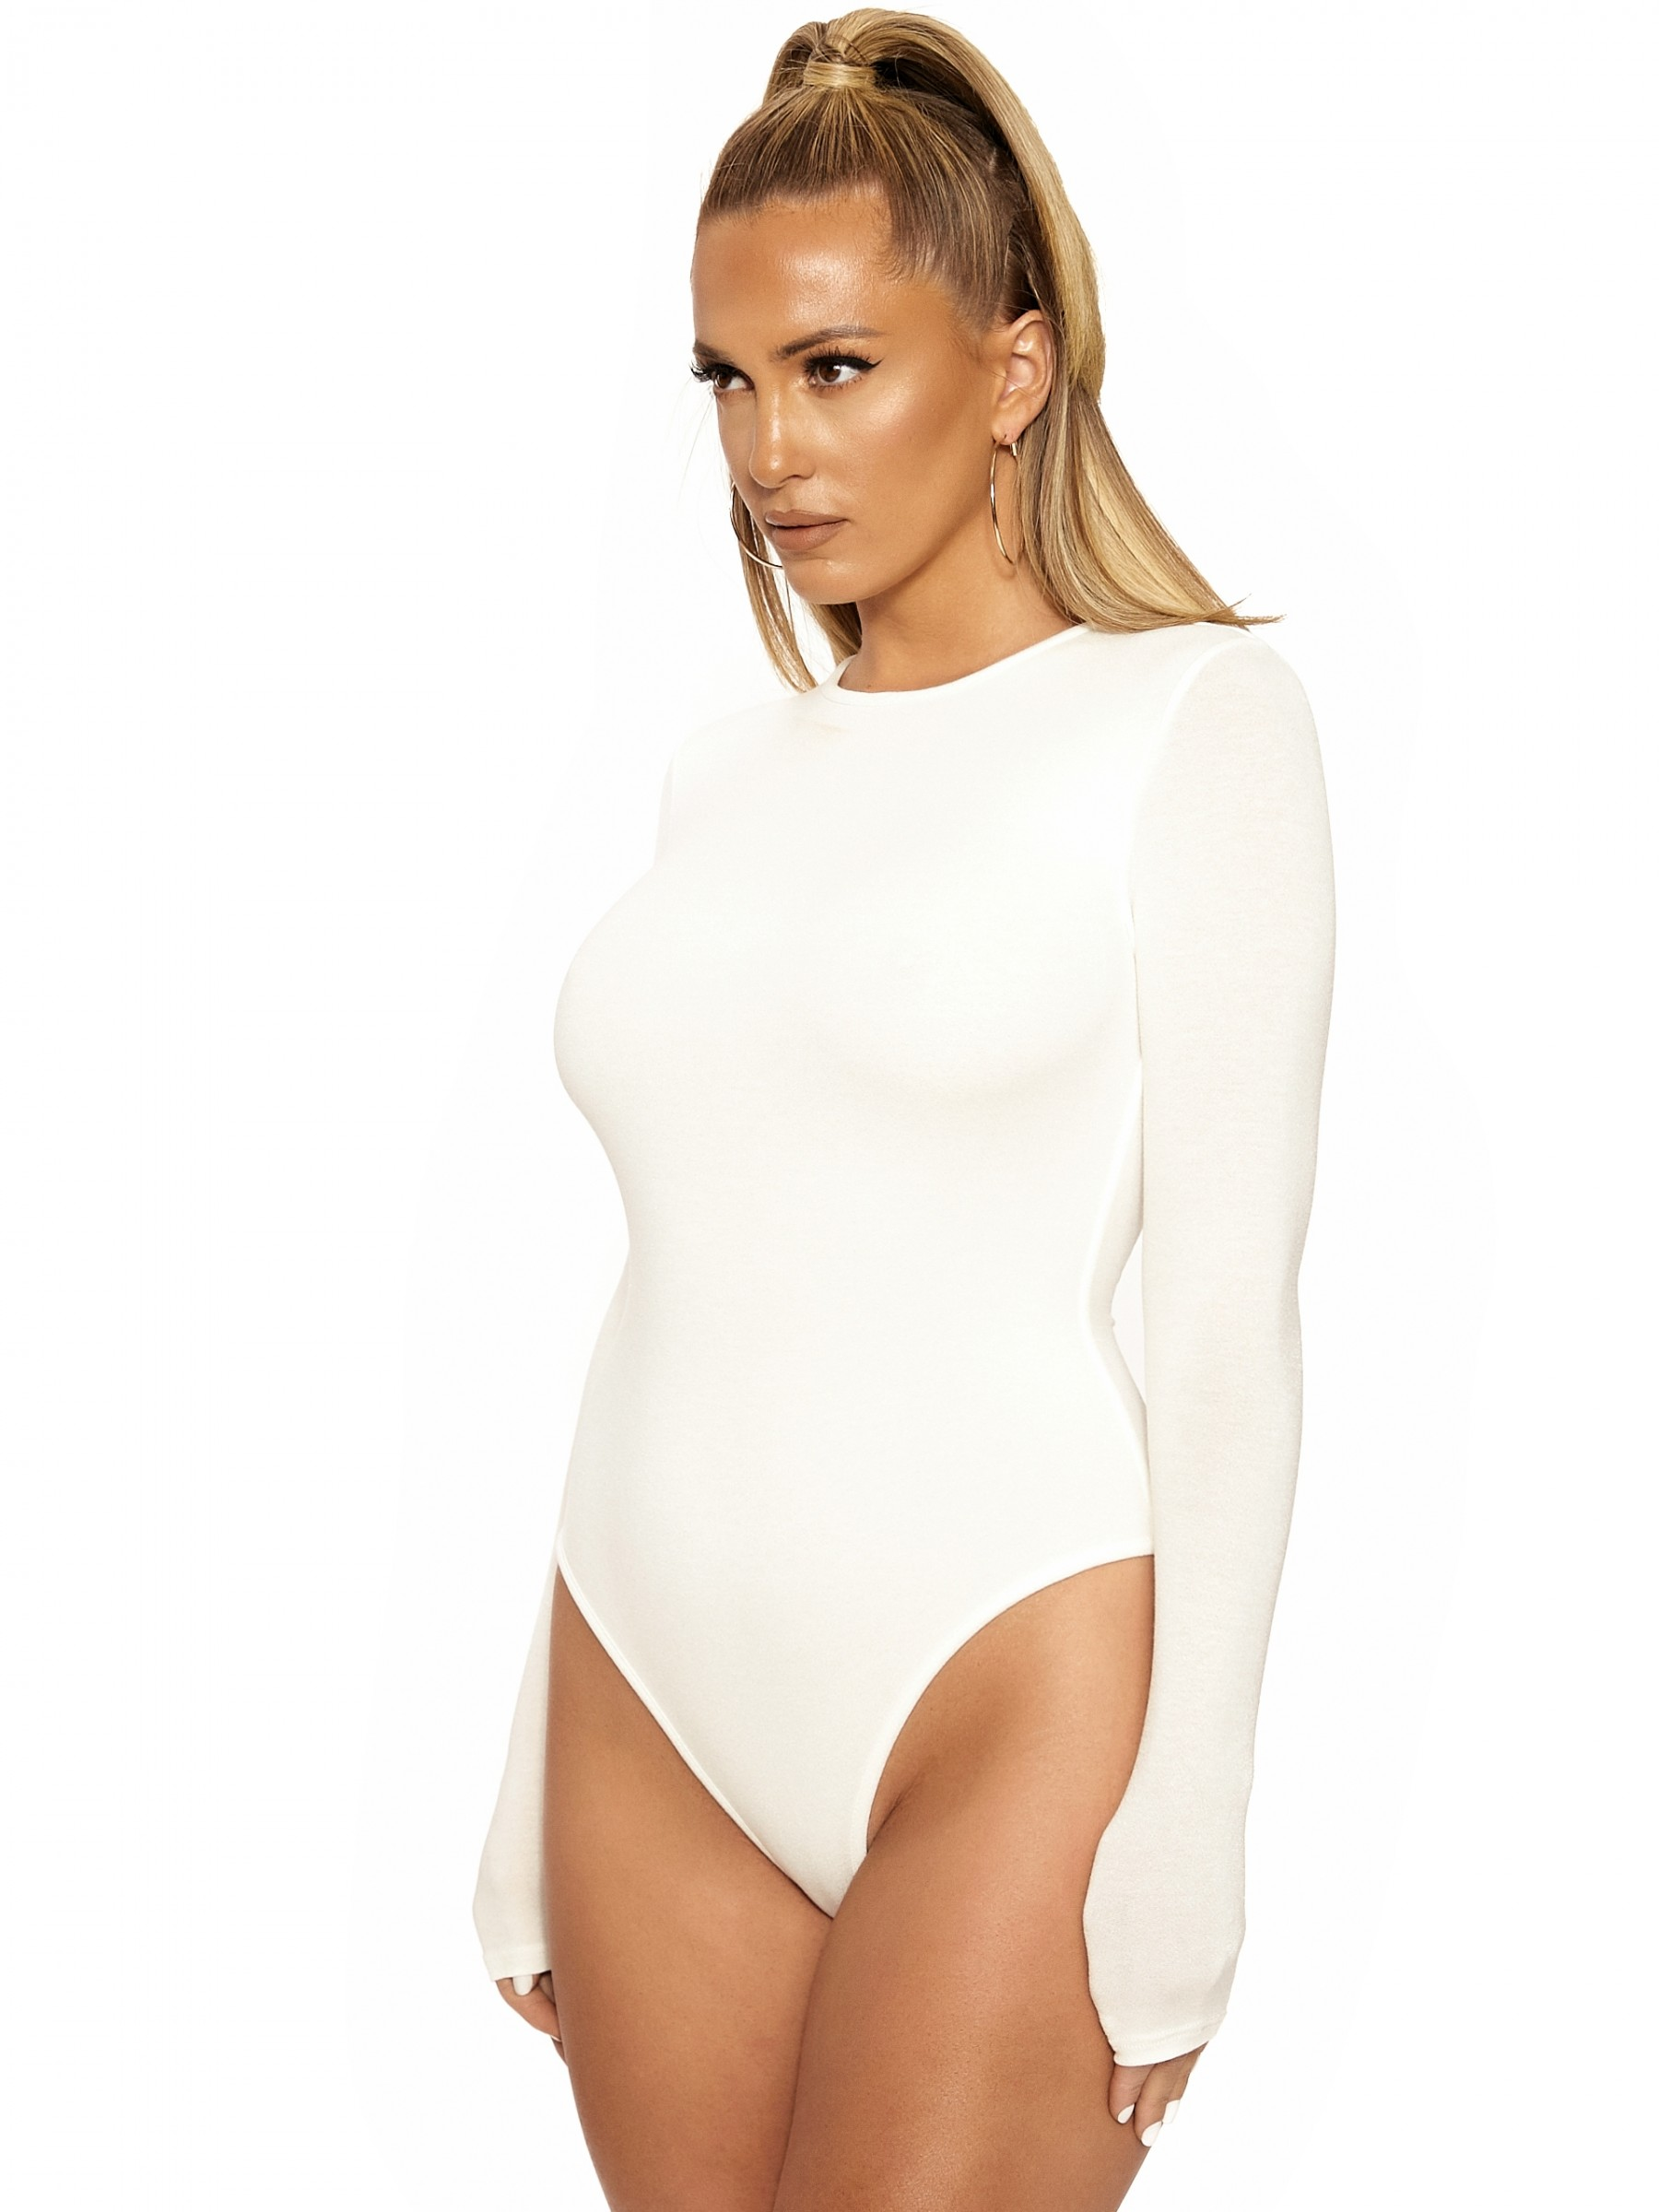 THE NW GOT U IN A BIND BODYSUIT by Naked-Wardrobe, available on nakedwardrobe.com for $42 Kylie Jenner Top Exact Product